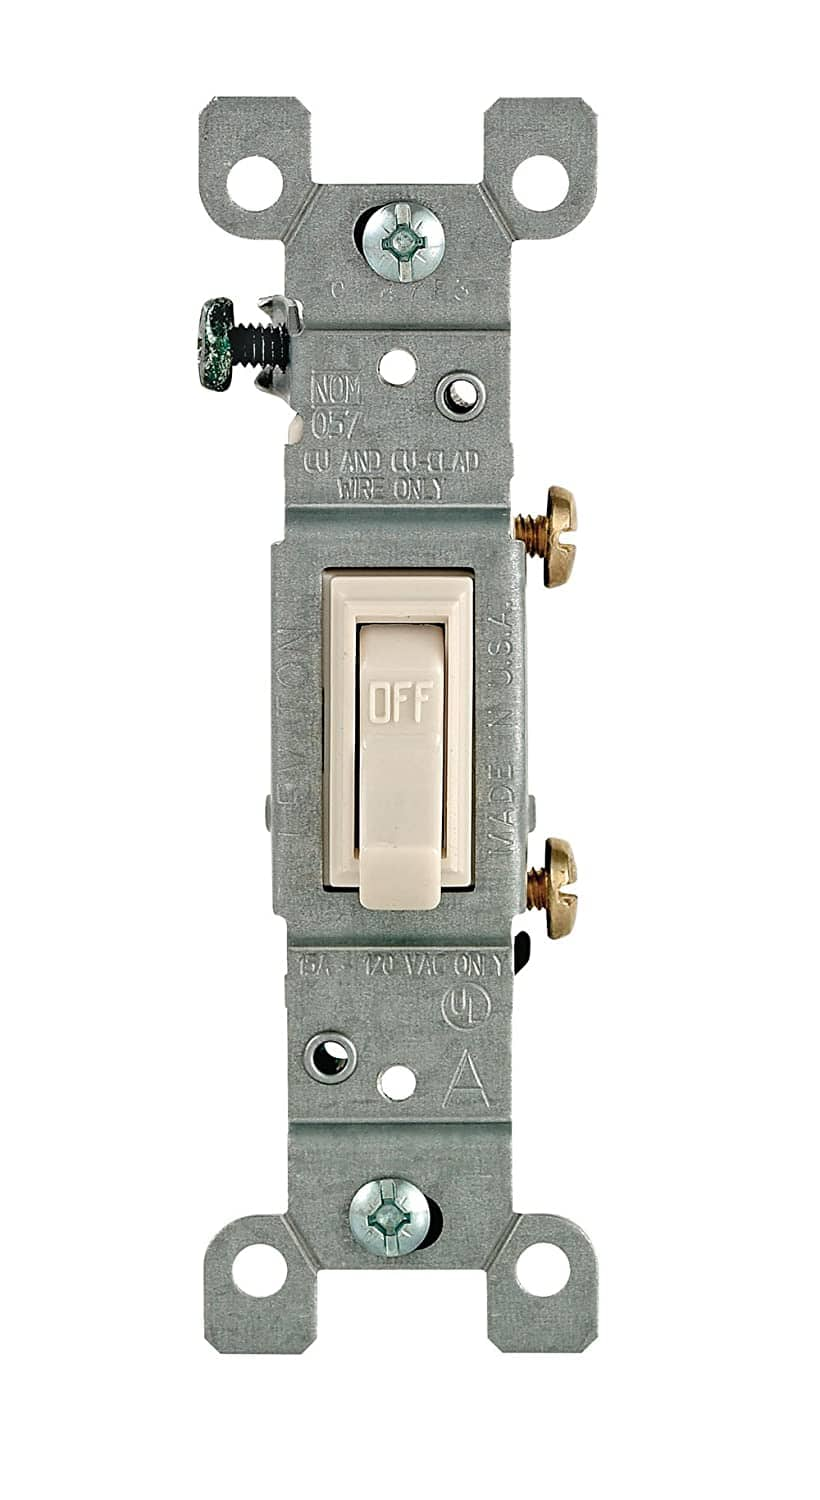 Leviton 1451-2T Framed Grounded Toggle Switch For 0.68$ with Free Prime shipping